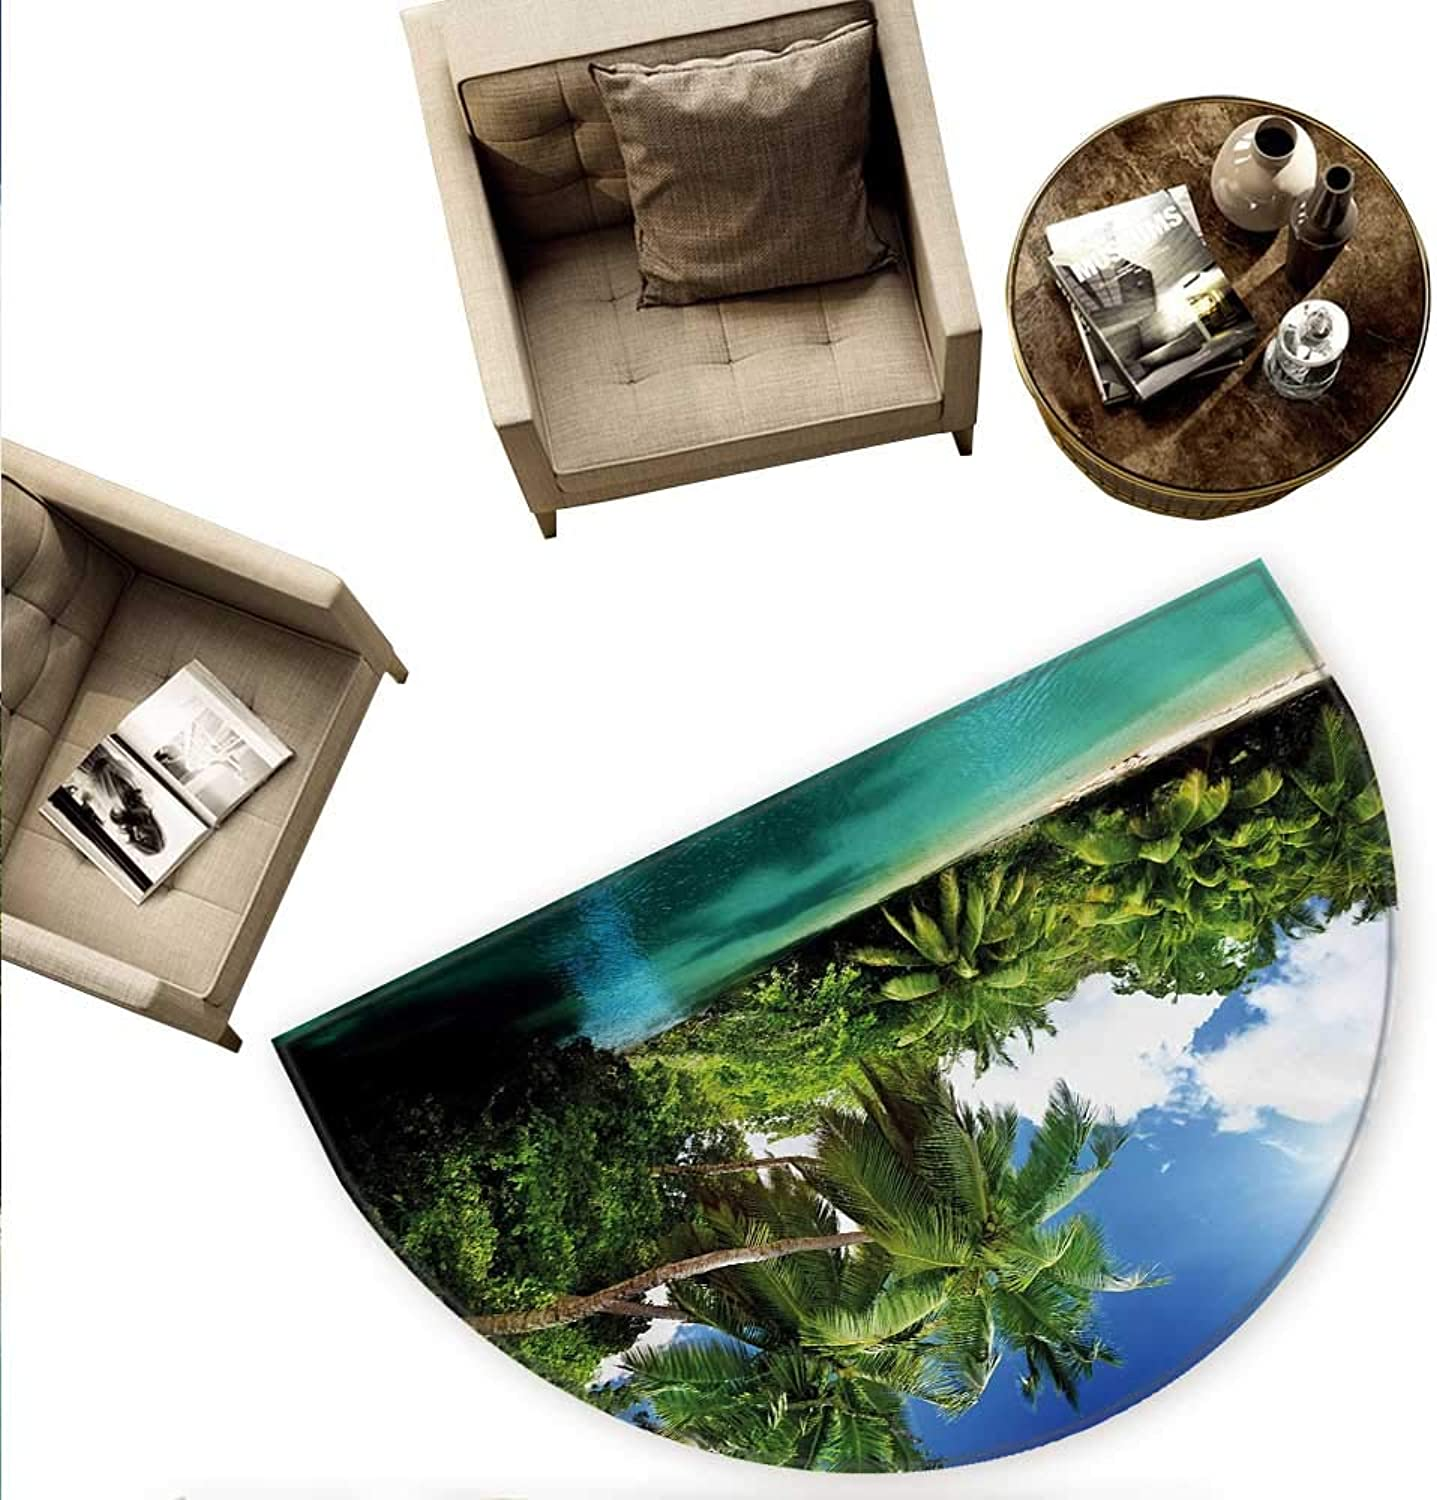 Jungle Semicircle Doormat Mahe Island Seychelles Lake and Palms with Clear Morning Sky Forest Vacation Halfmoon doormats H 74.8  xD 112.2  Aqua Green White